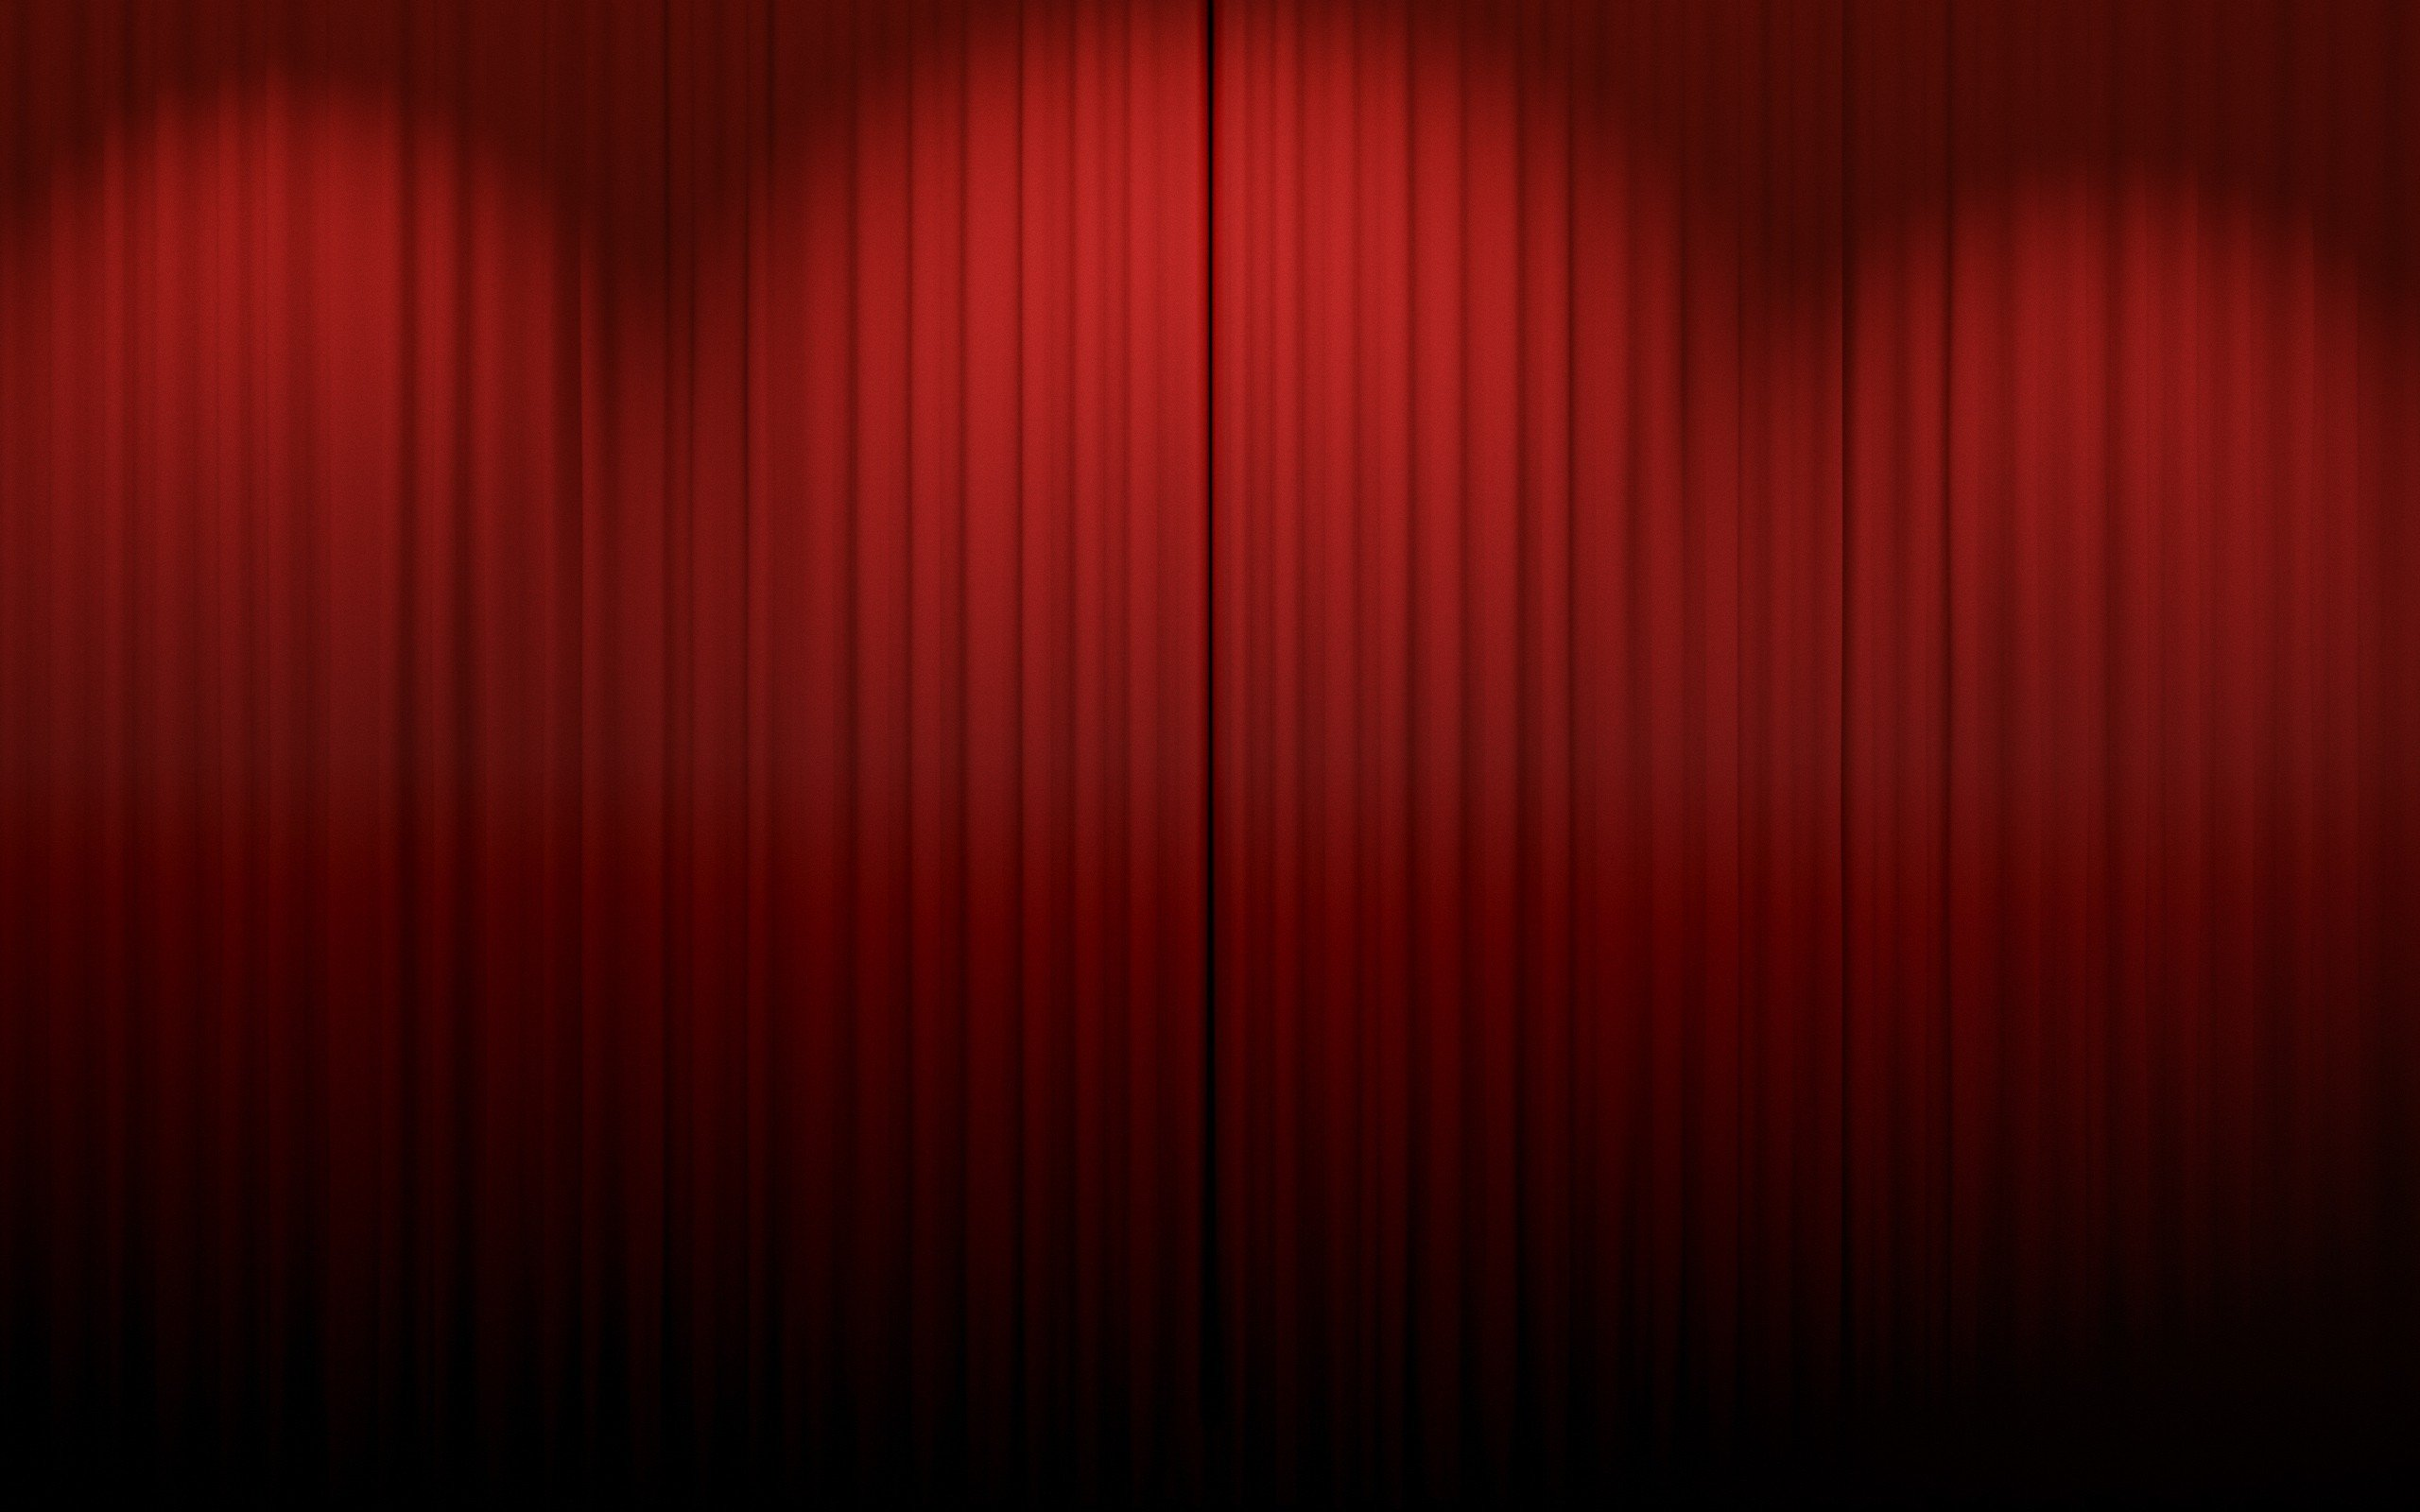 Red curtains stage - Red Curtains Wallpaper 2560x1600 Red Curtains Theatre Scenario Html